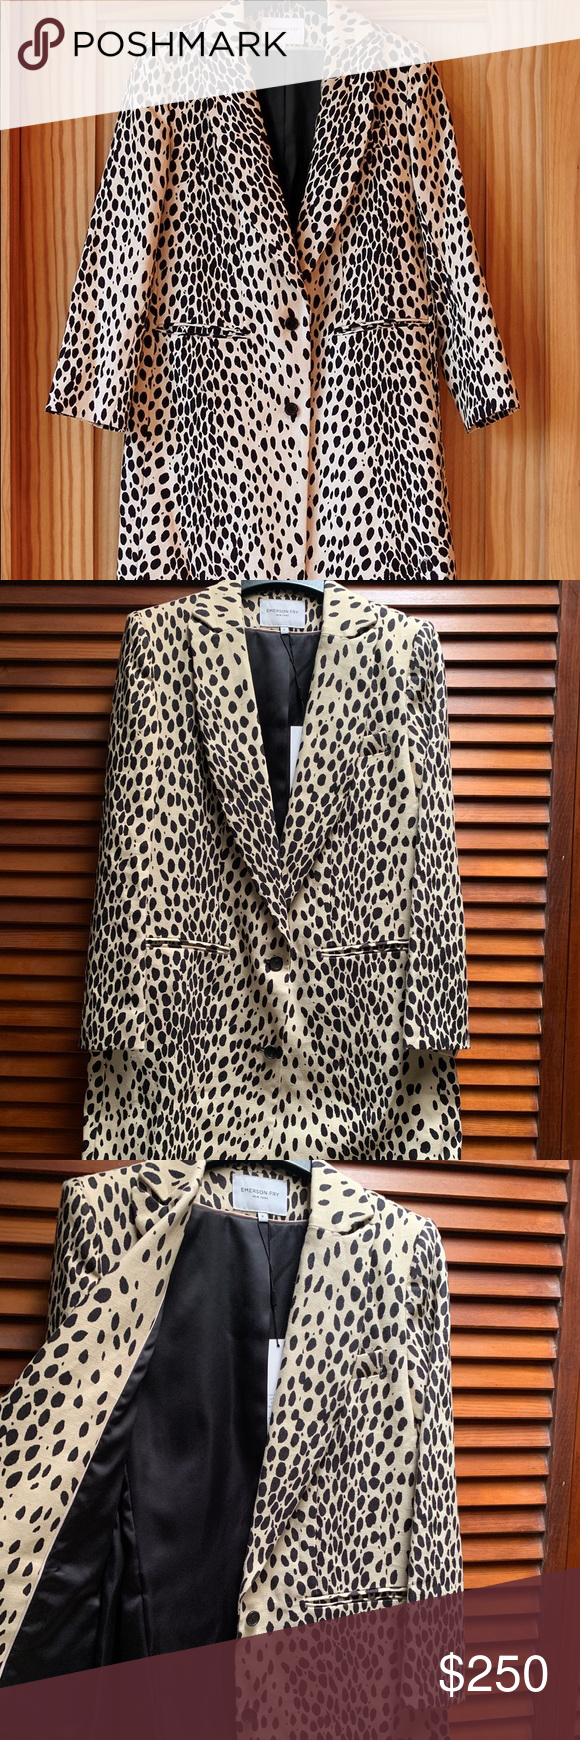 Emerson Fry Wingtip Coat Signature Emerson Leopard print on Belgian linen inspired/adapted from our in-house collection of 1960s Leopard coats. Tailored shoulder and slim sleeve with boxy body fit.  100% heavy weight linen body   Fully lined in satin Center back length is 34